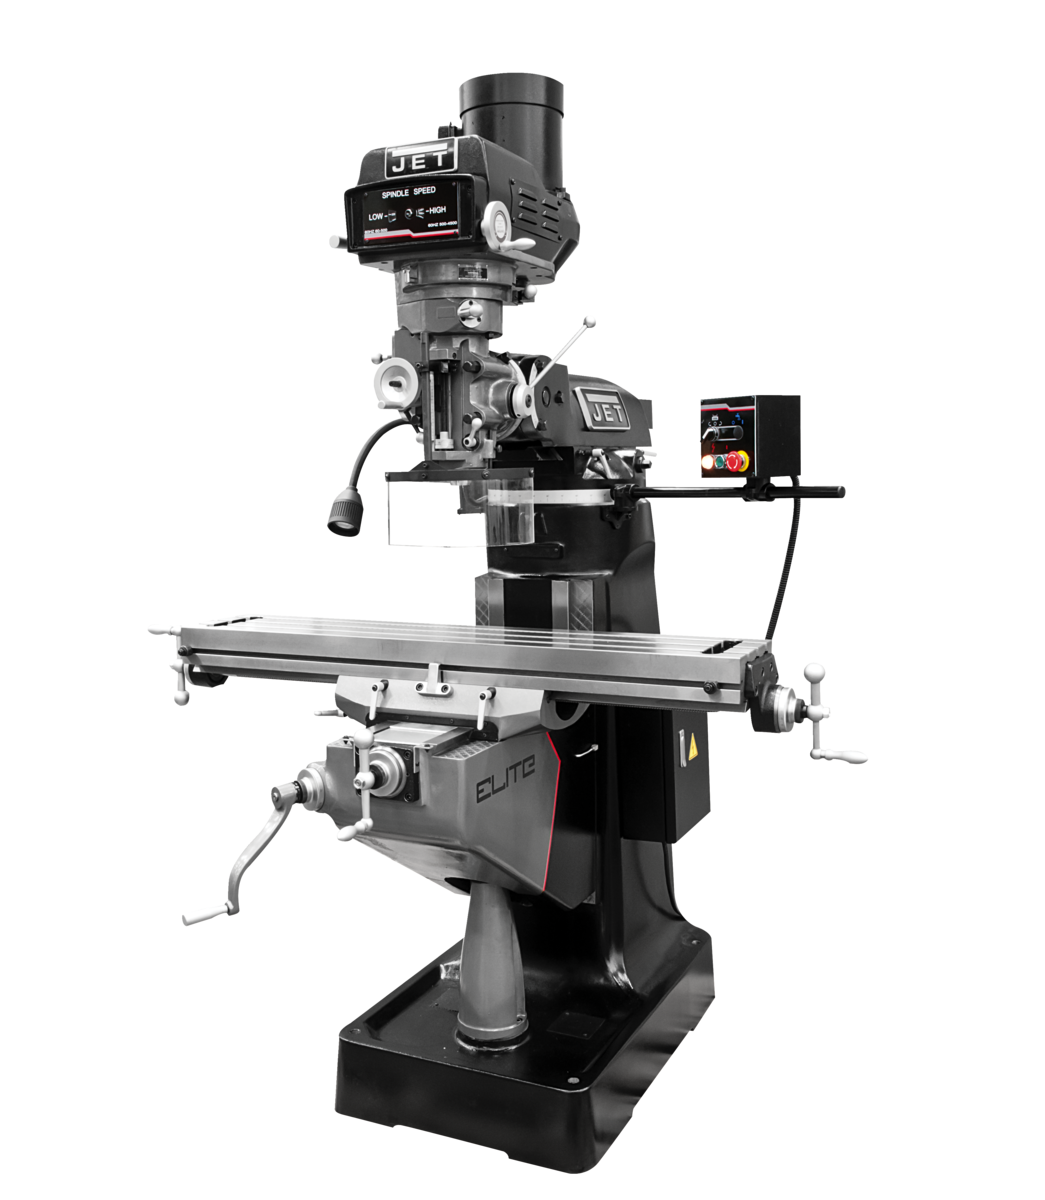 ETM-949 Mill with 3-Axis ACU-RITE 303  (Knee) DRO